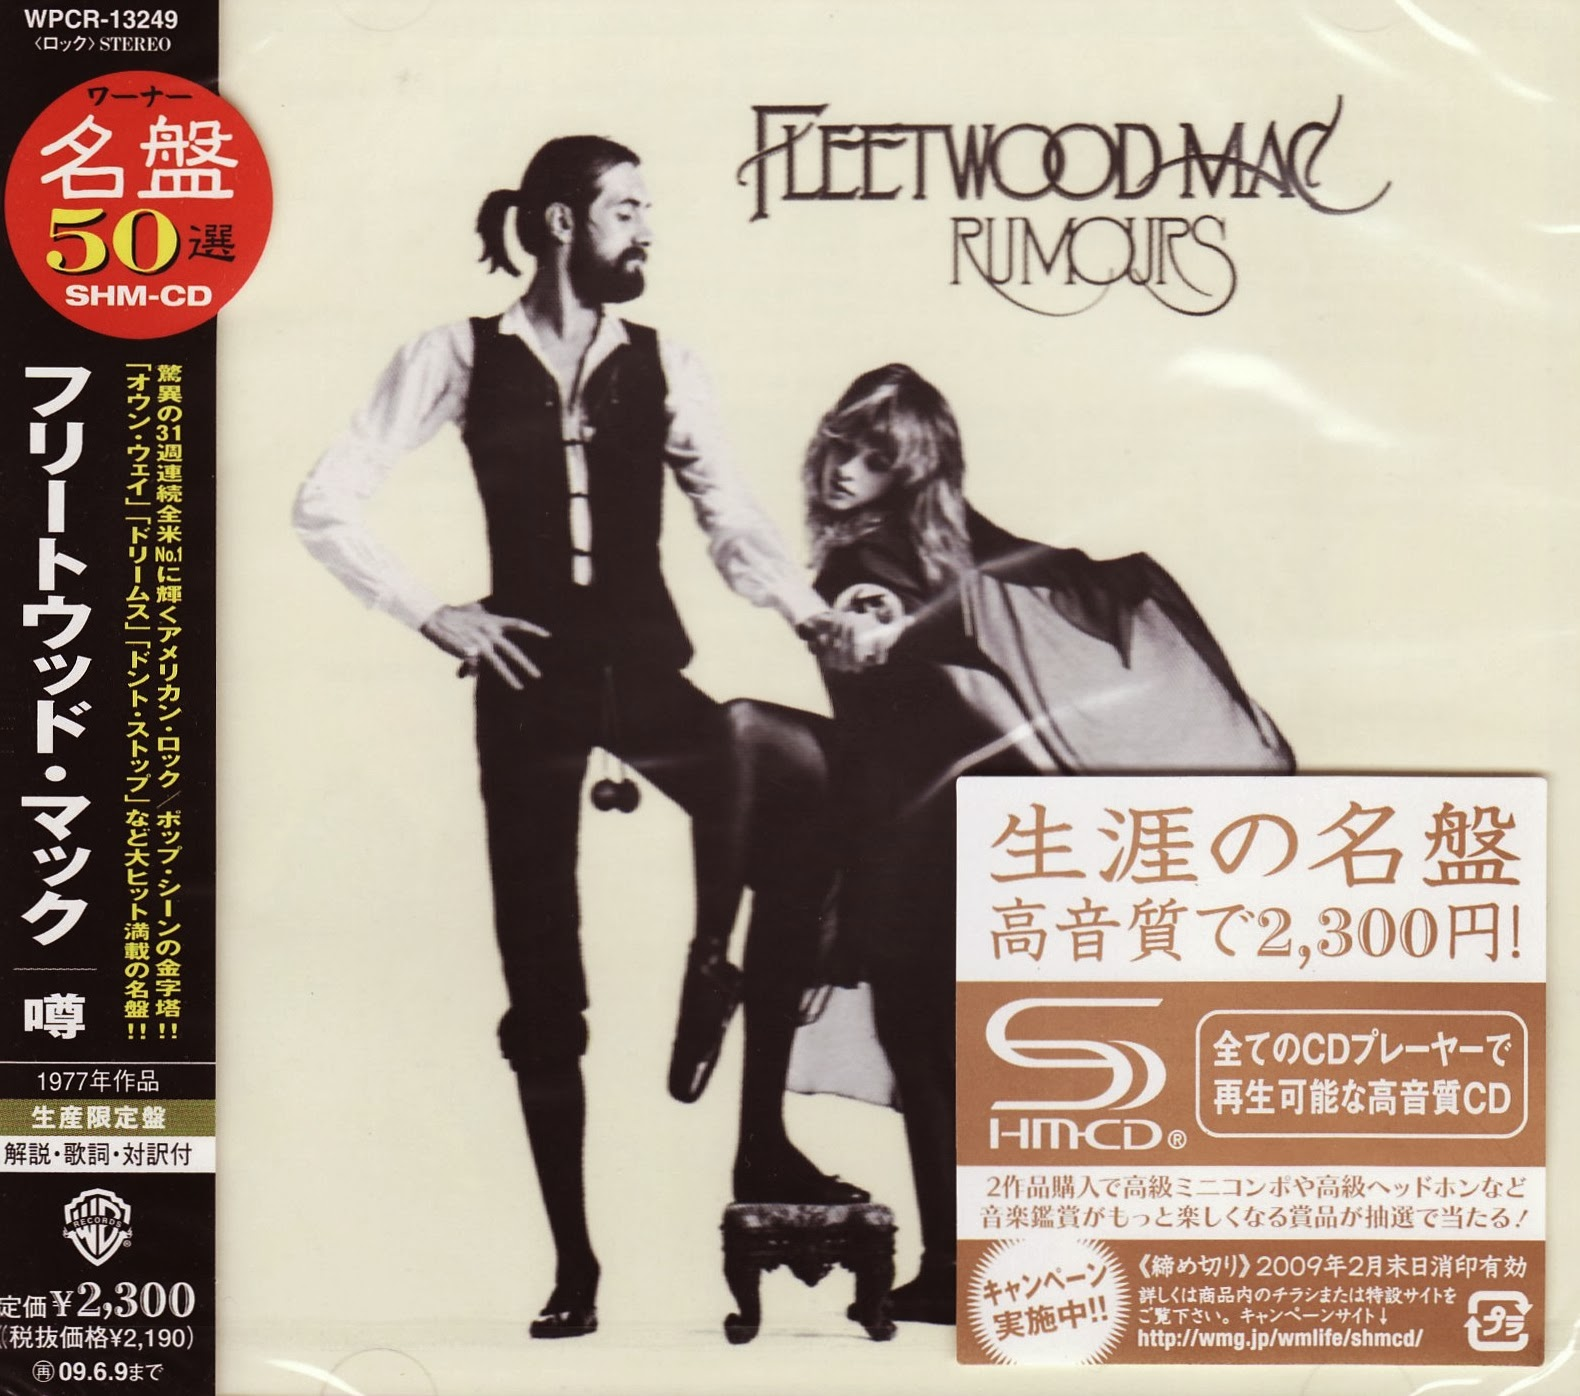 fleetwood mac rumours expanded edition rar